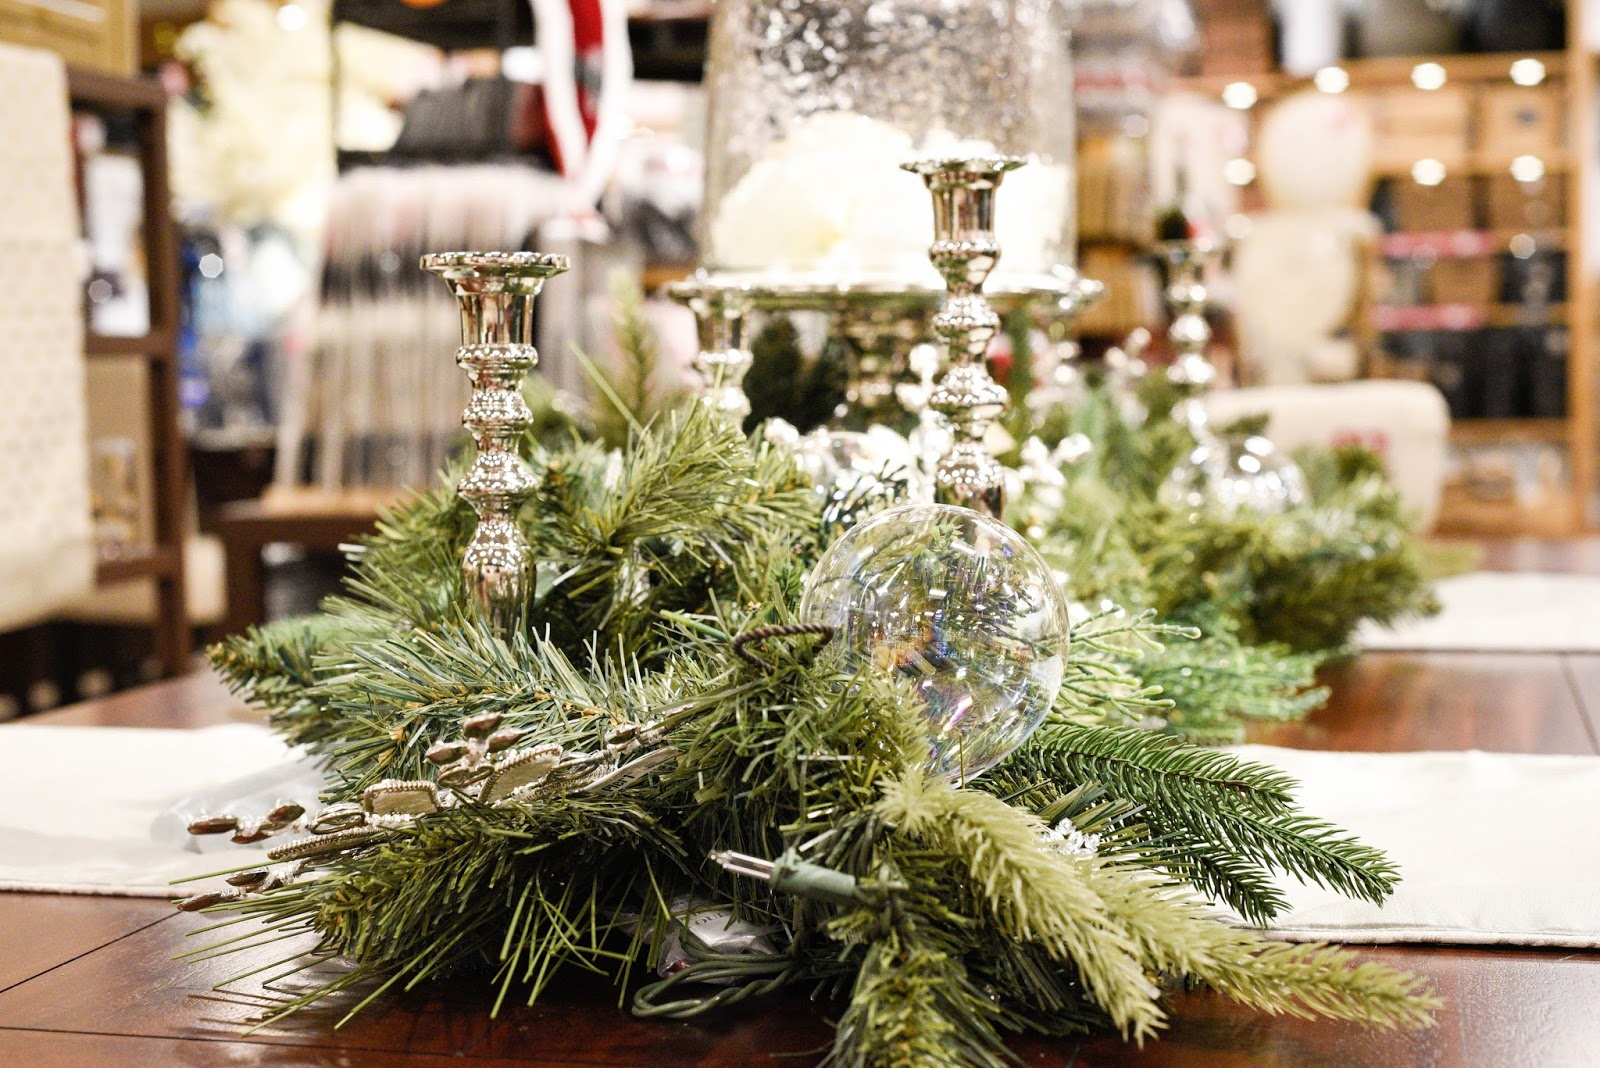 Last week I jumped at the chance to preview the Grand Opening of the new  Chicago area Pier 1 Imports store. A great local organization for moms, ...